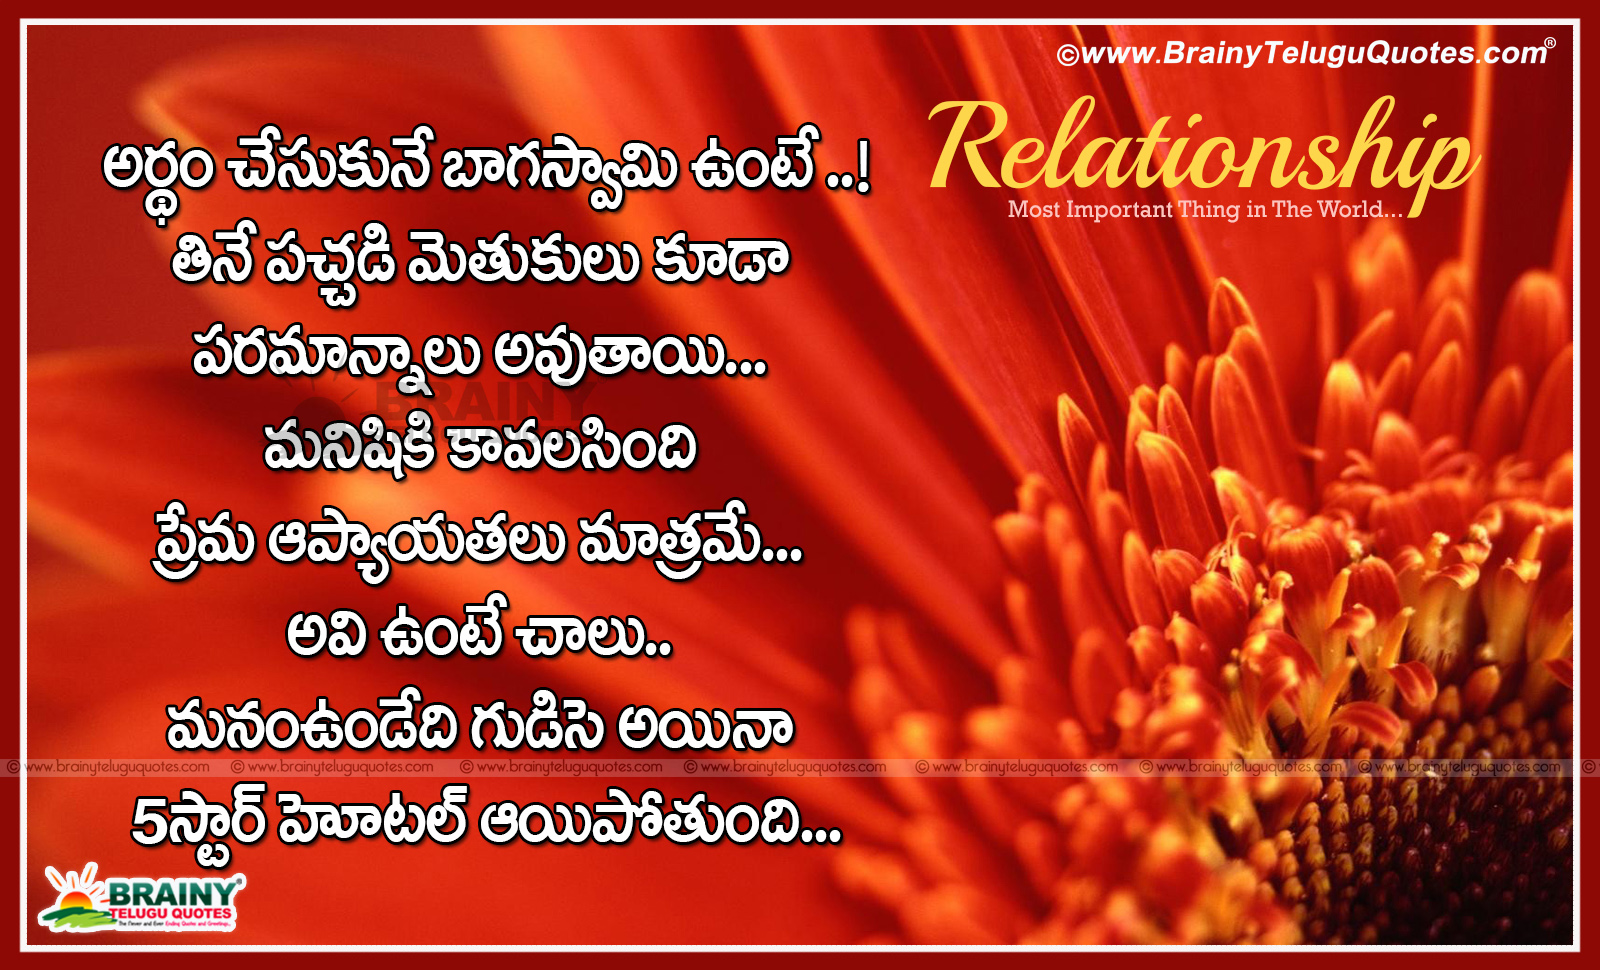 Beautiful Telugu Messages For Best Relationship Love Messages For Family Relations Images Brainyteluguquotes Comtelugu Quotes English Quotes Hindi Quotes Tamil Quotes Greetings